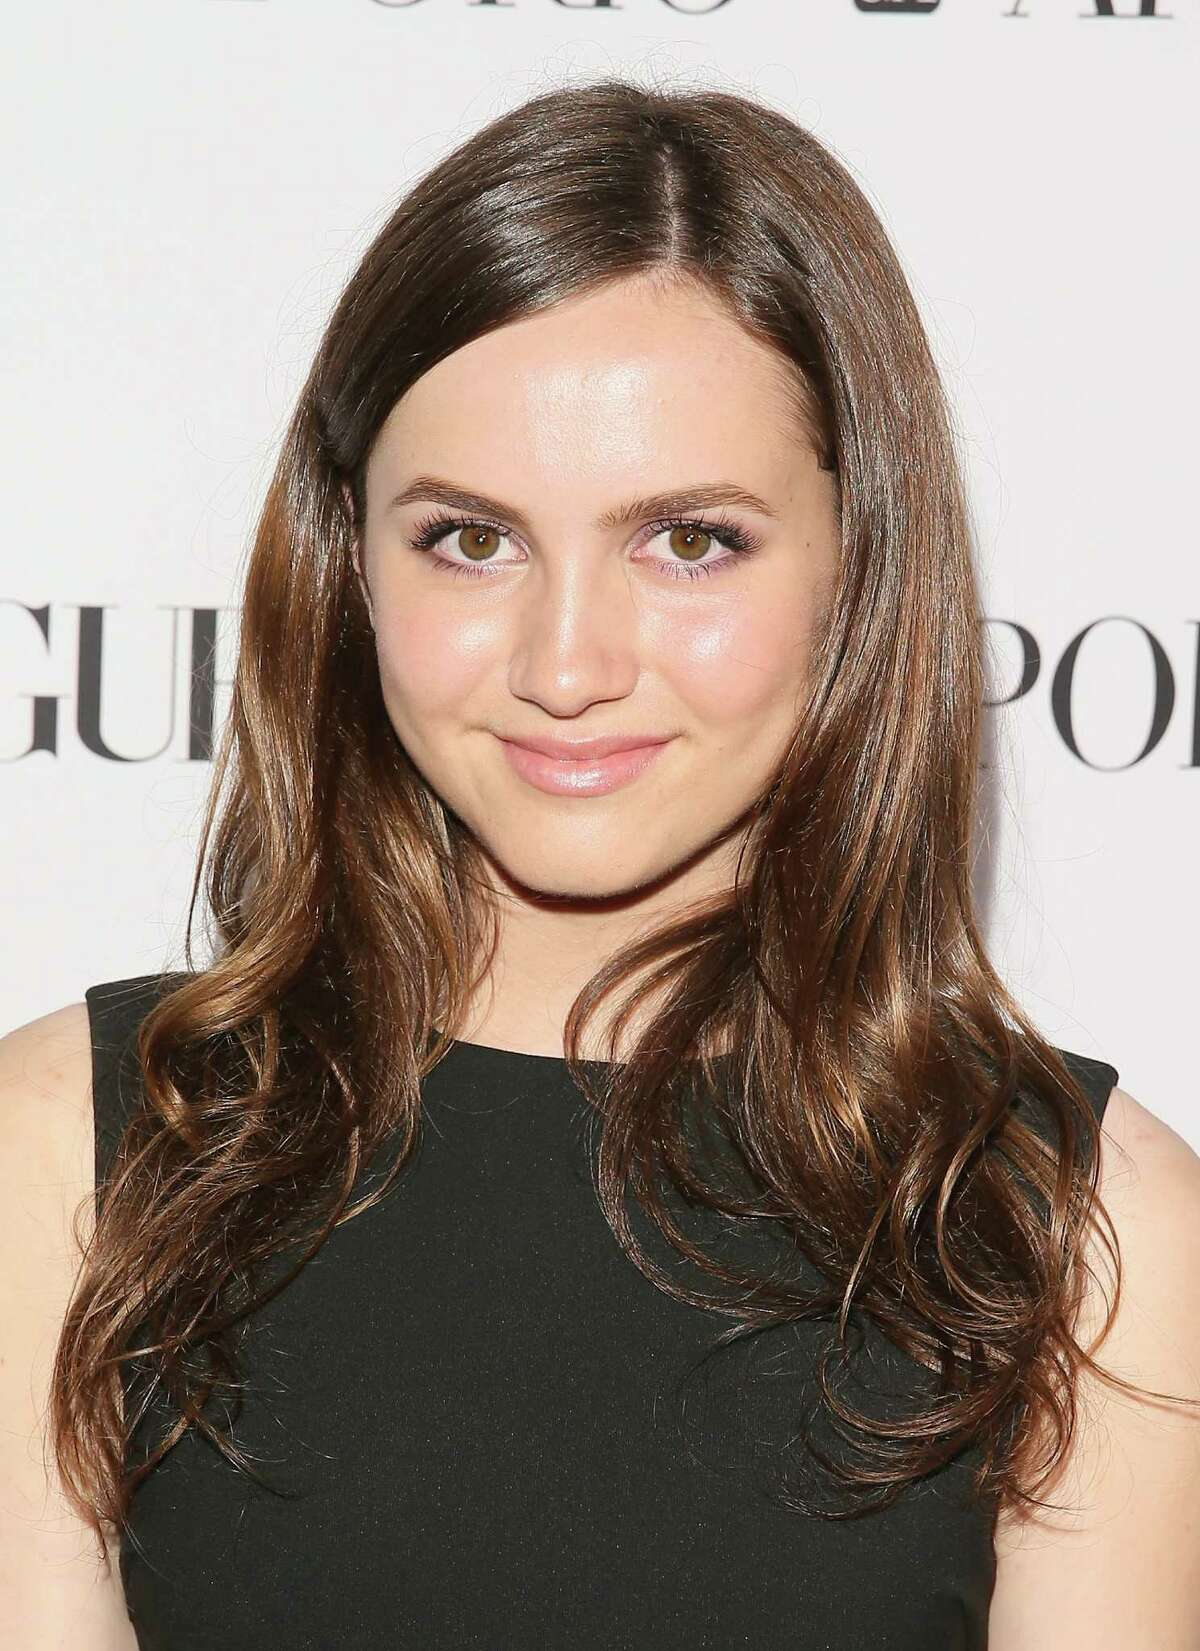 Actress Maude Apatow is the daughter of director Judd Apatow, actress Leslie Mann. She plays the role of Cleo in the TV series,